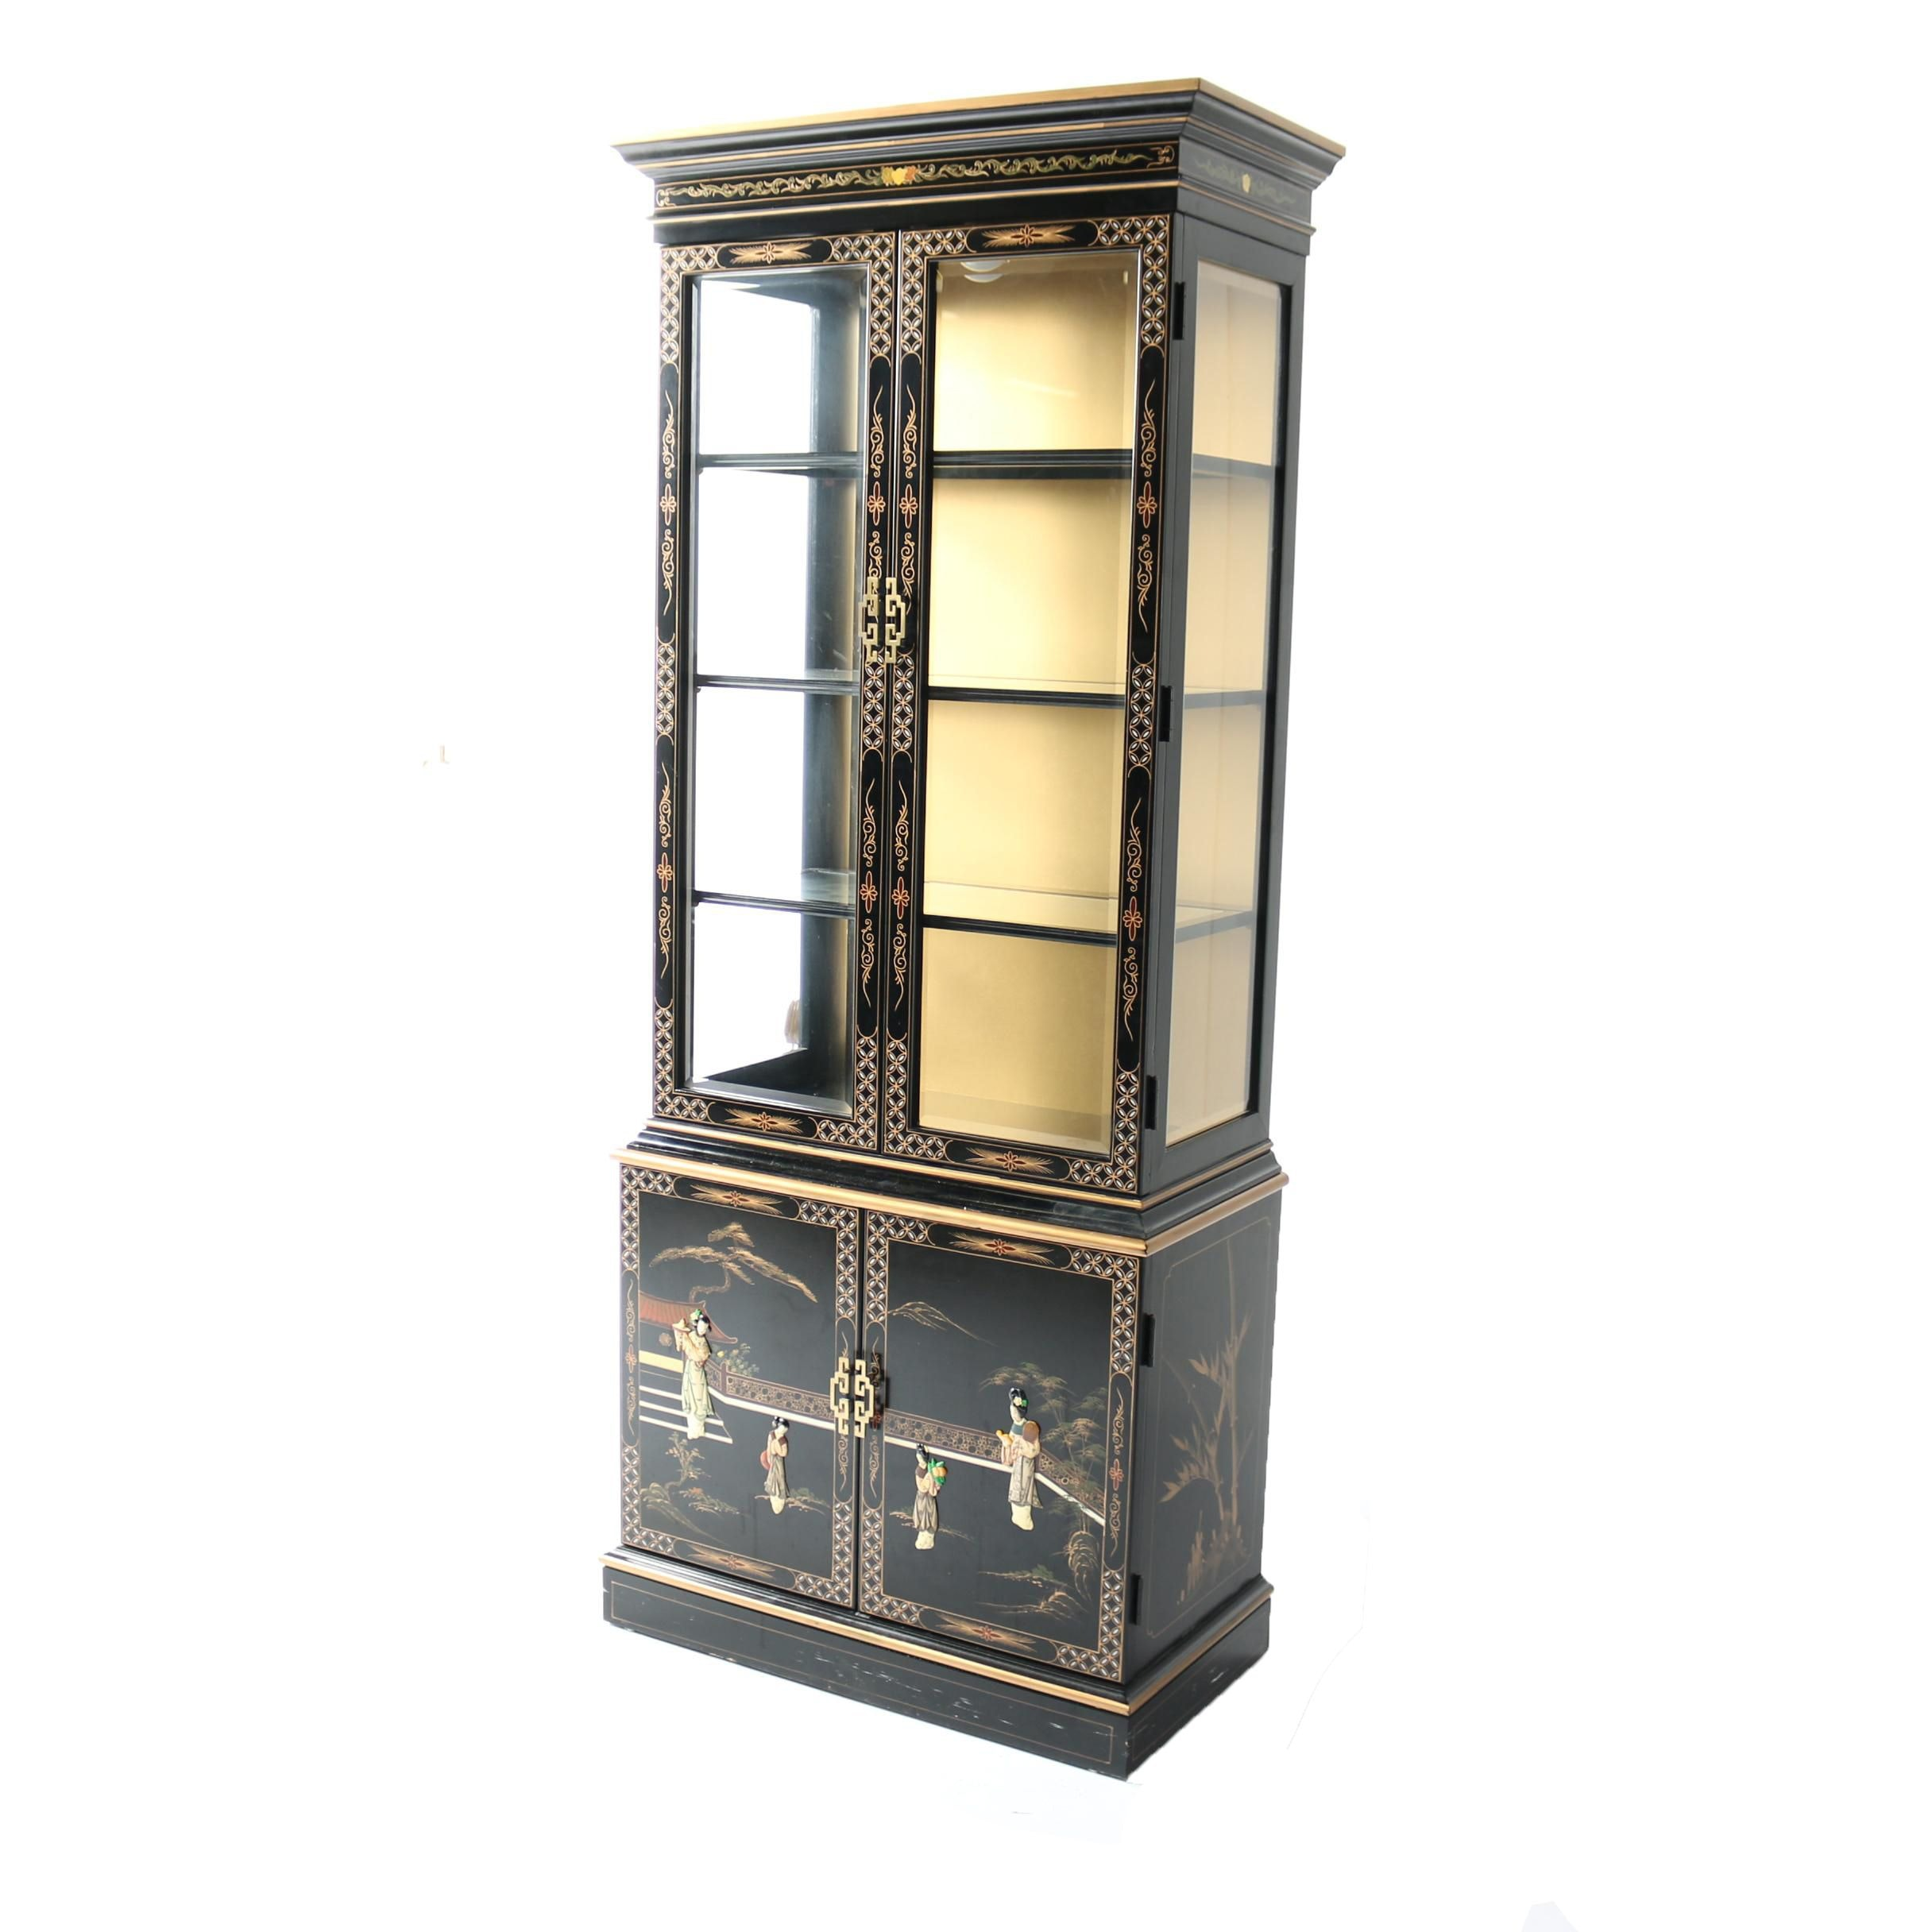 Vintage Chinese Black Lacquered Illuminated China Cabinet